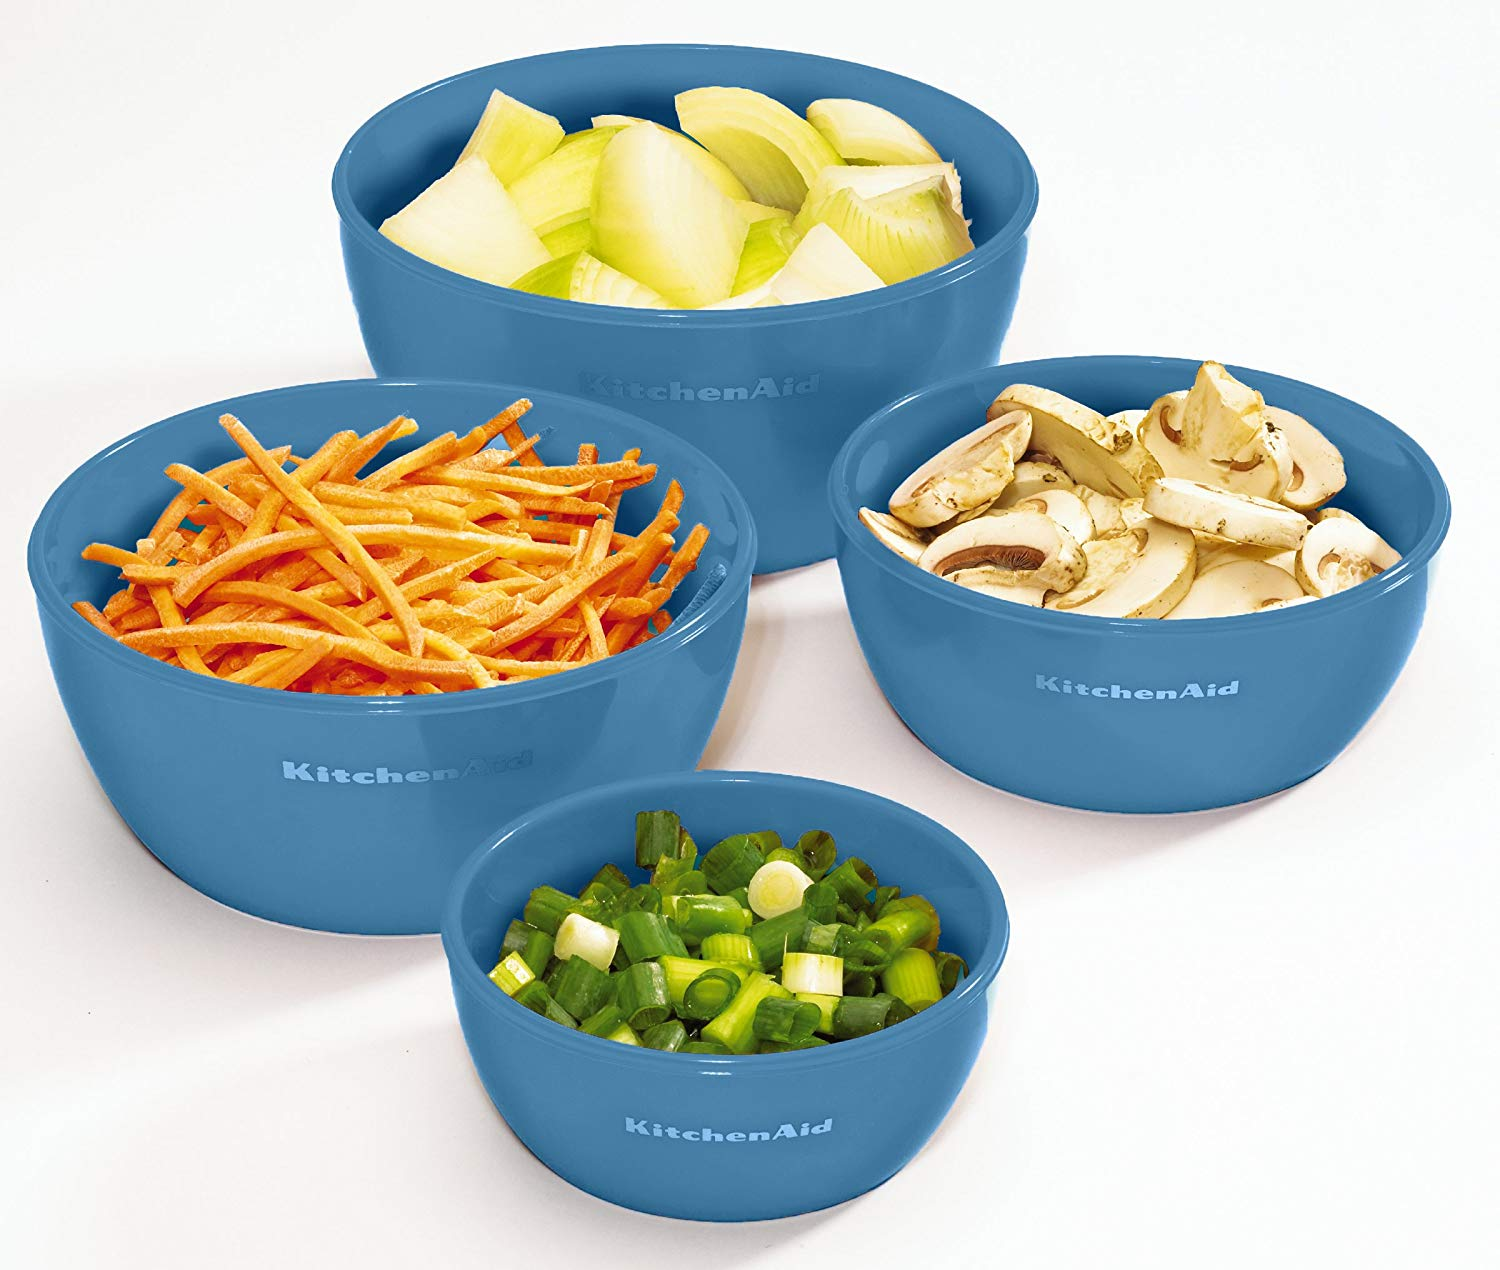 Set of 4 Kitchenaid Prep Bowls with Lids $9.89 -